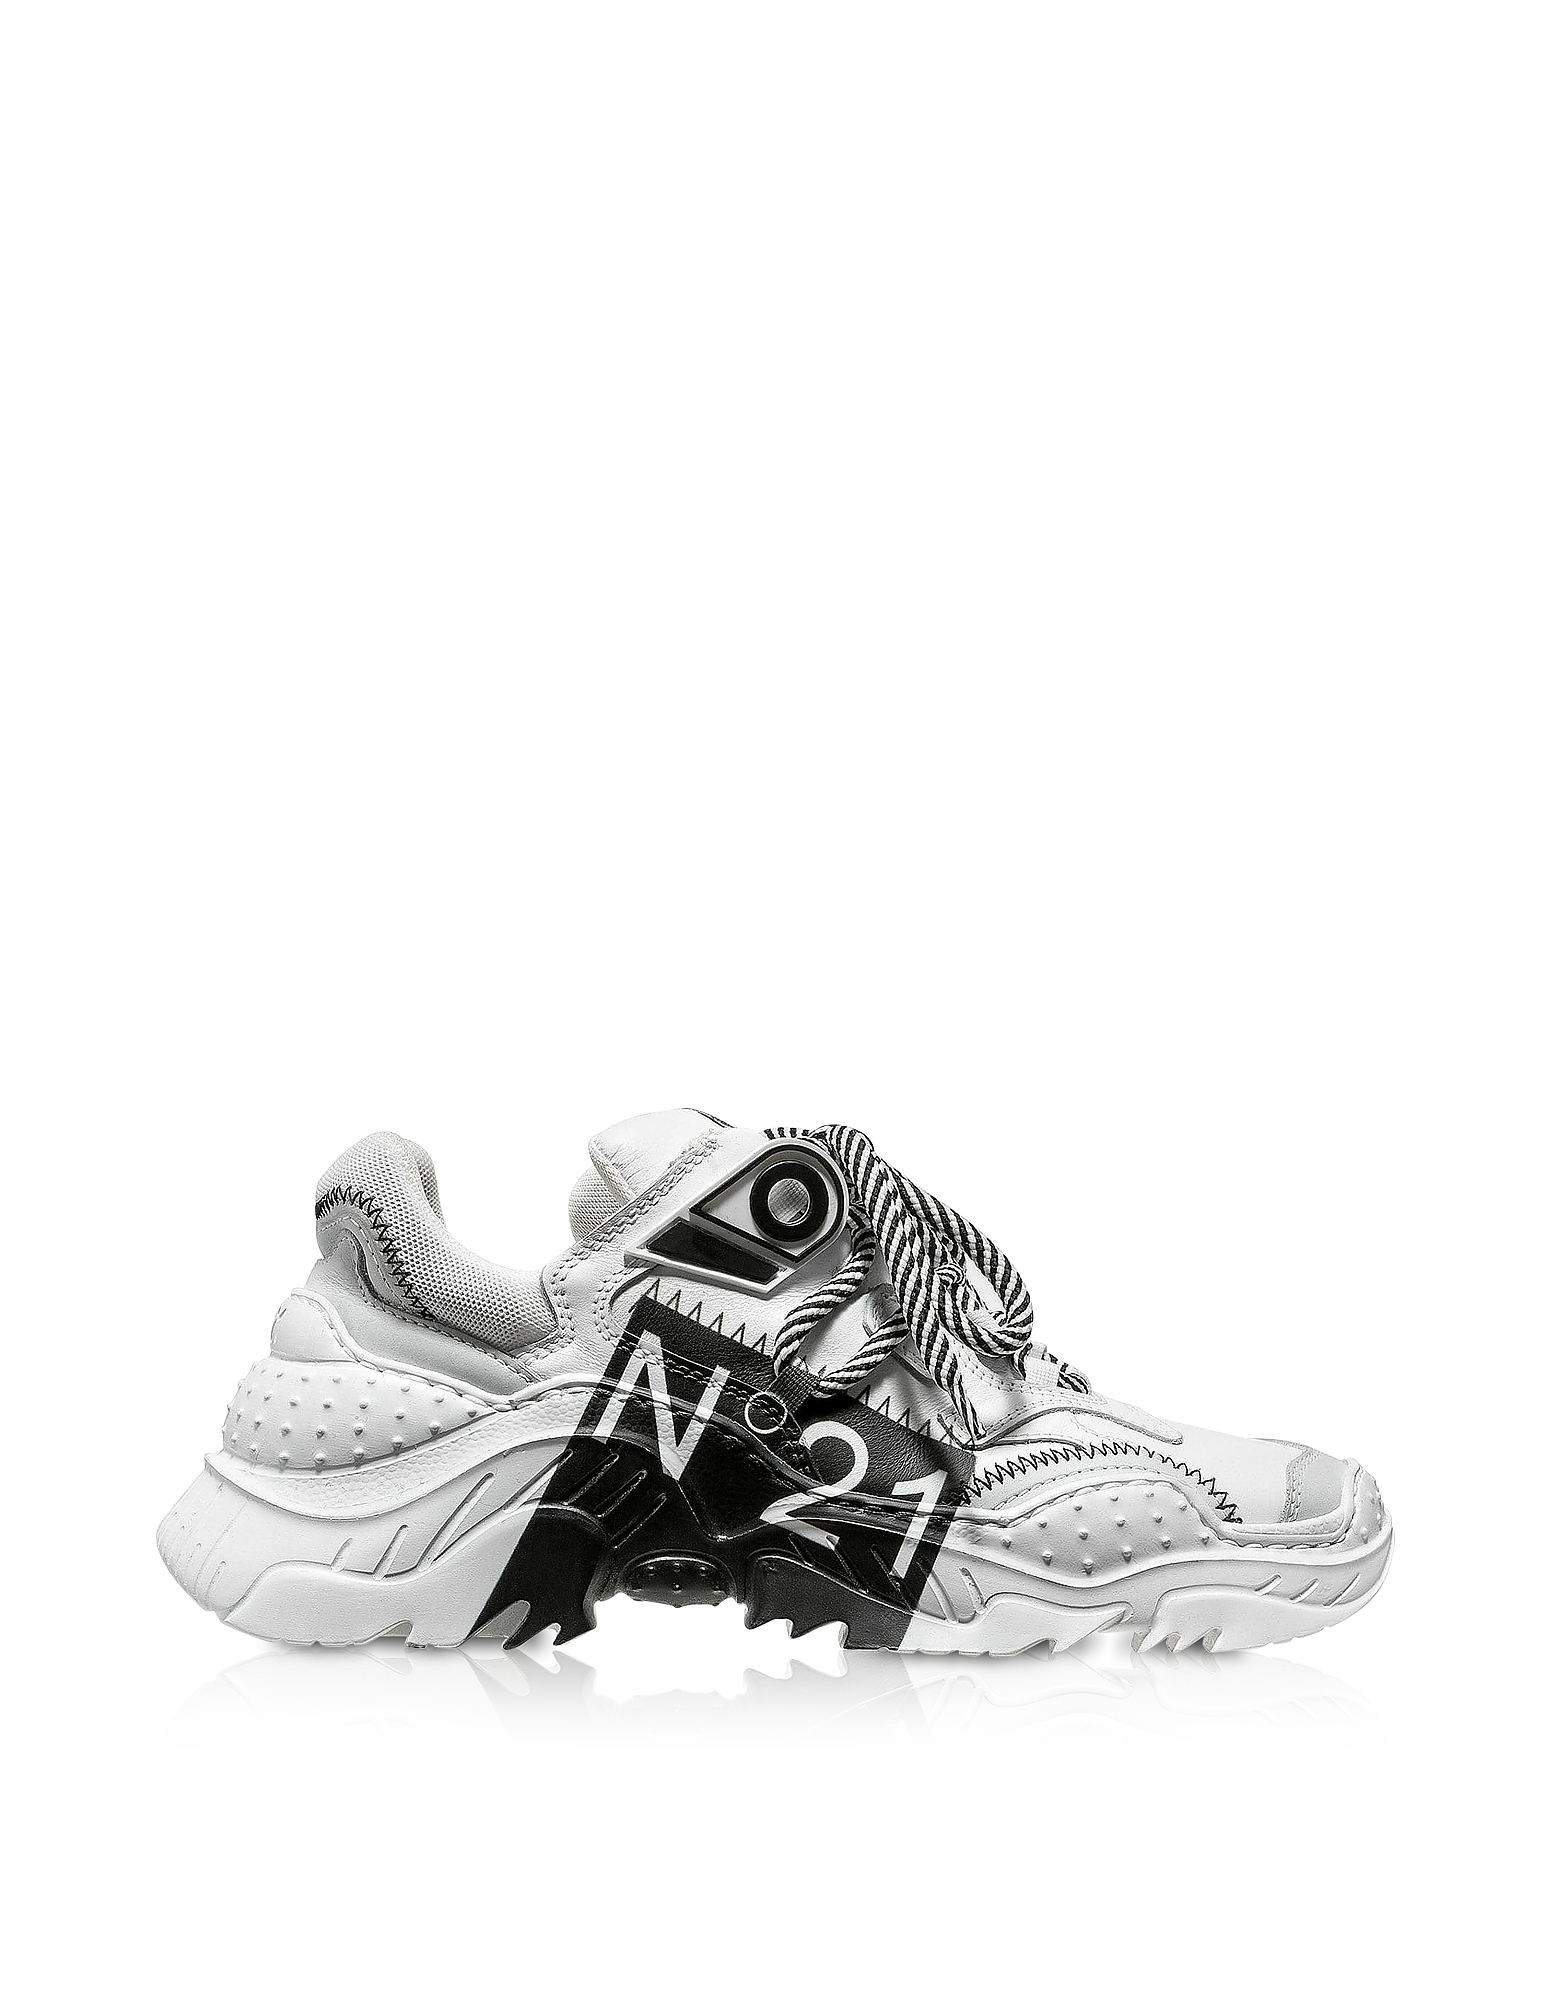 Billy Limited Edition White/Black Women's Sneakers